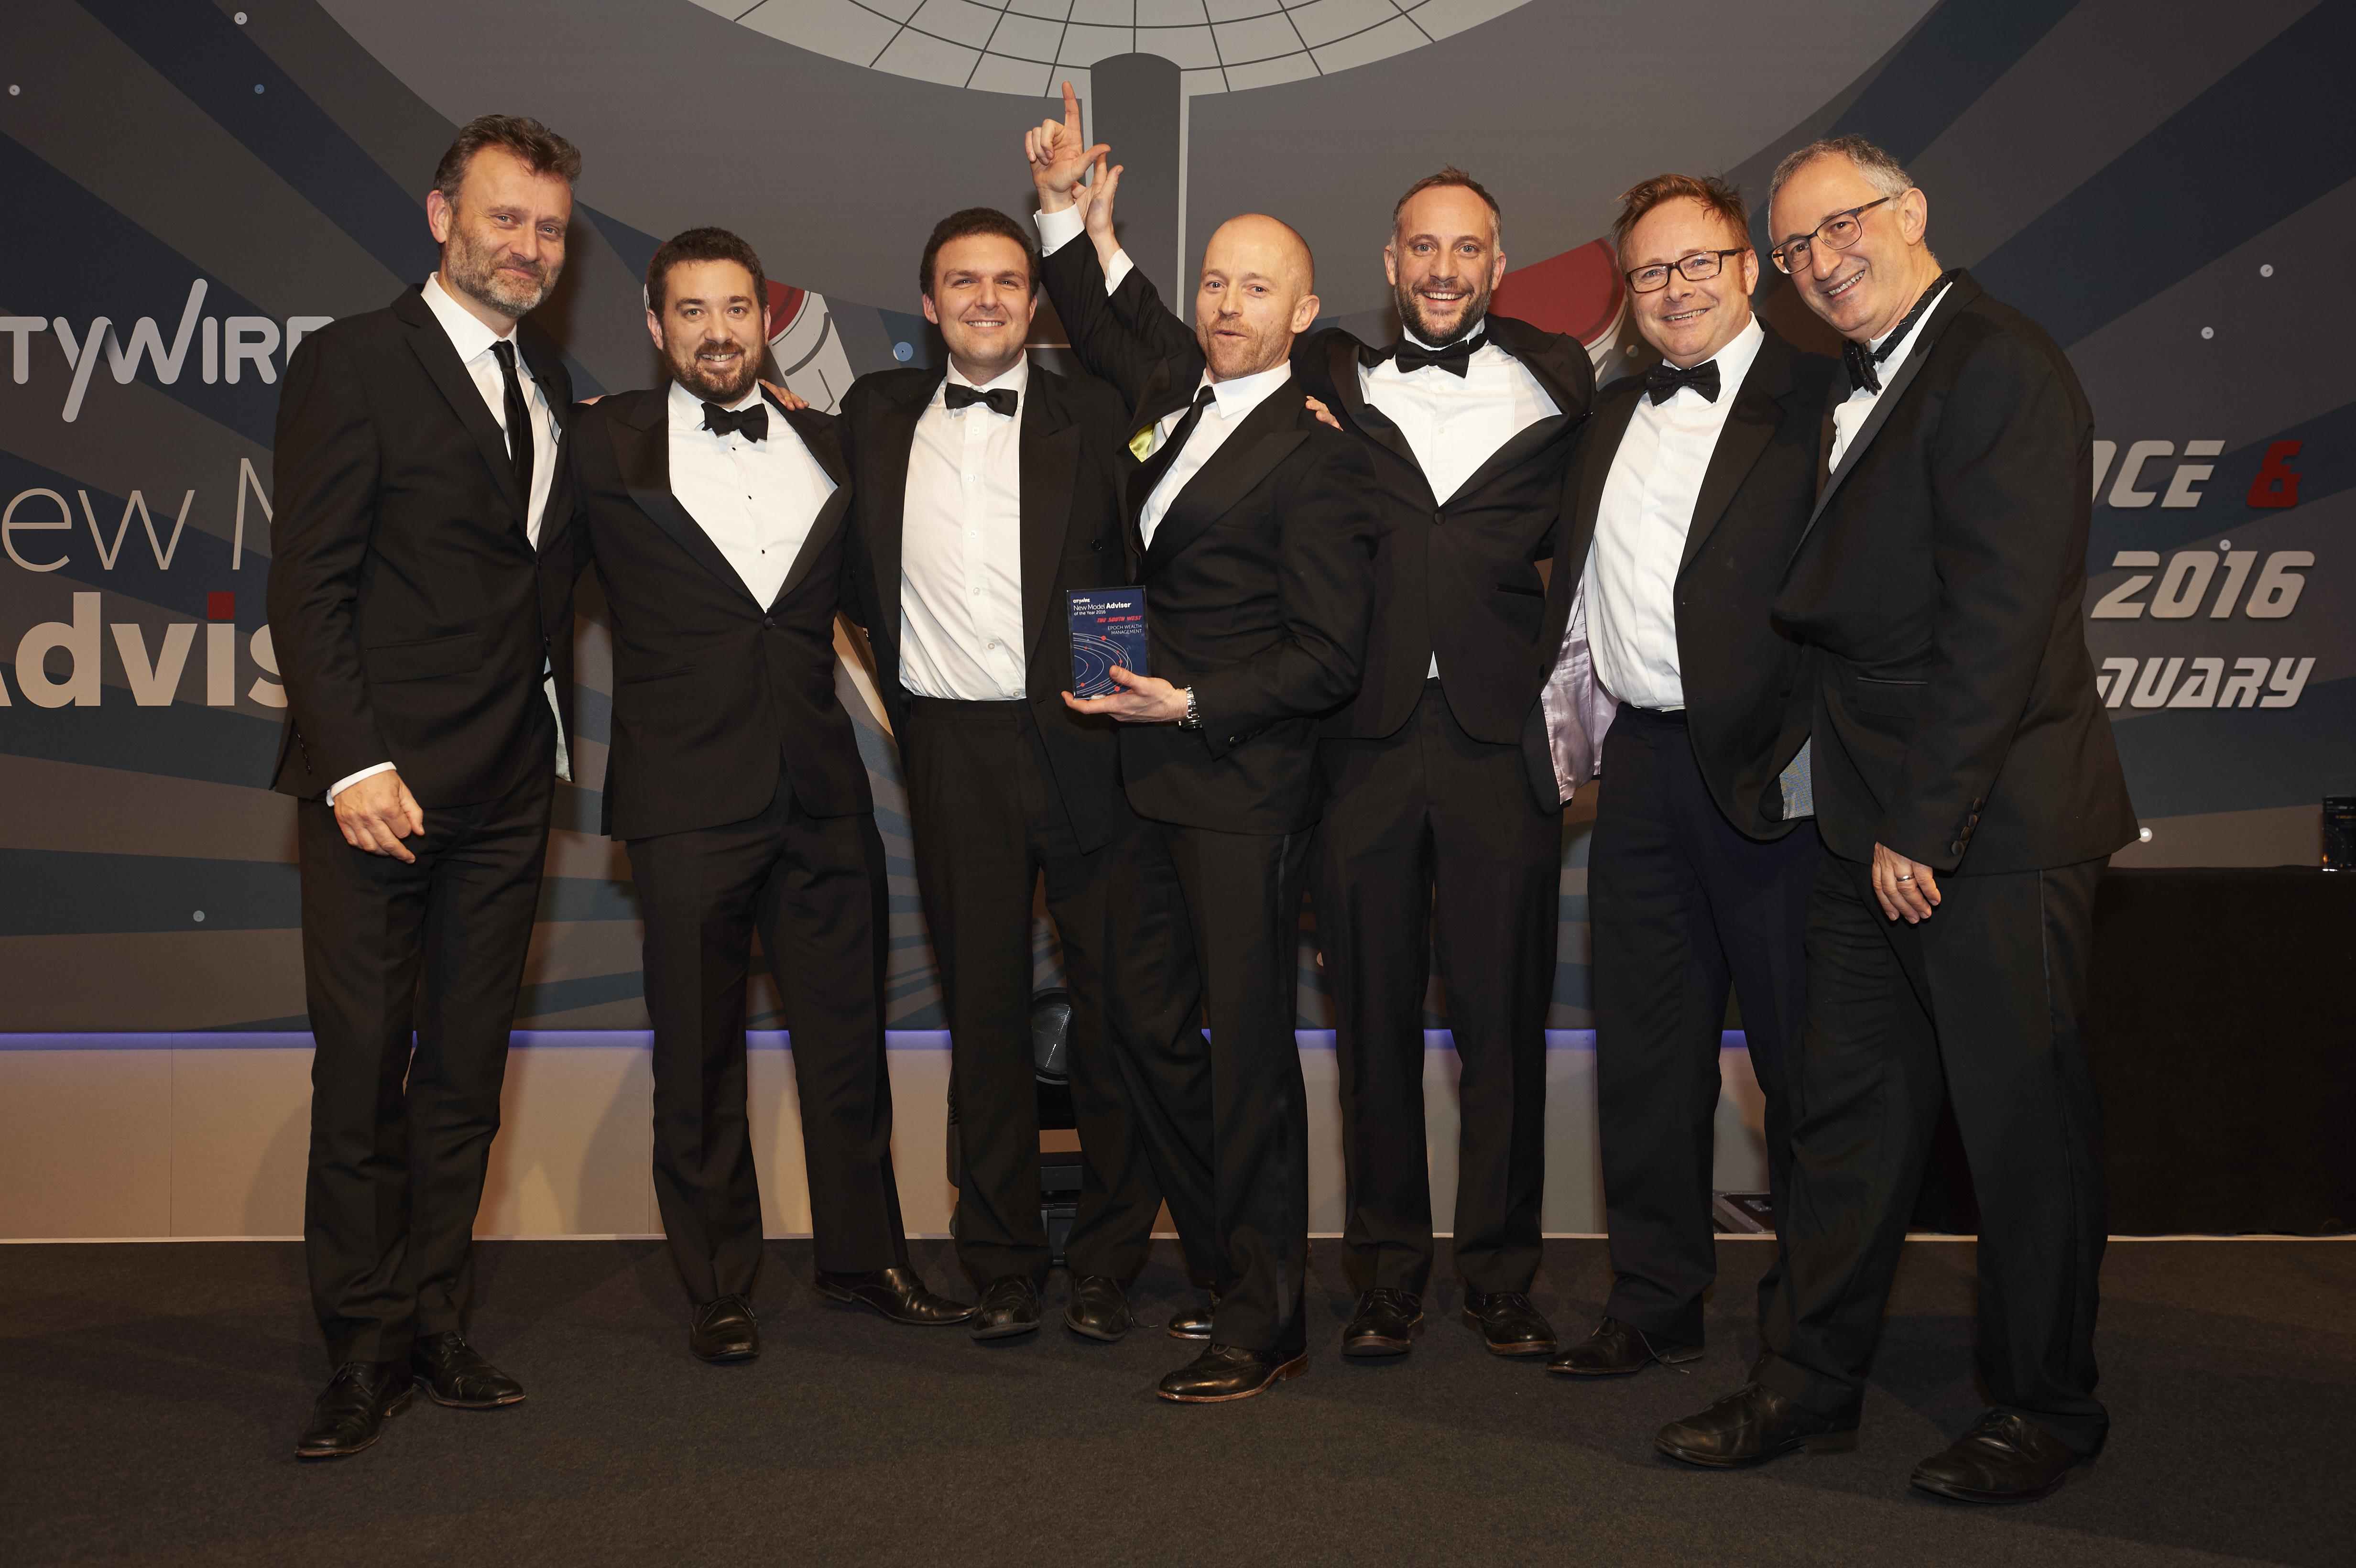 Epoch crowned South West's top financial adviser for second time